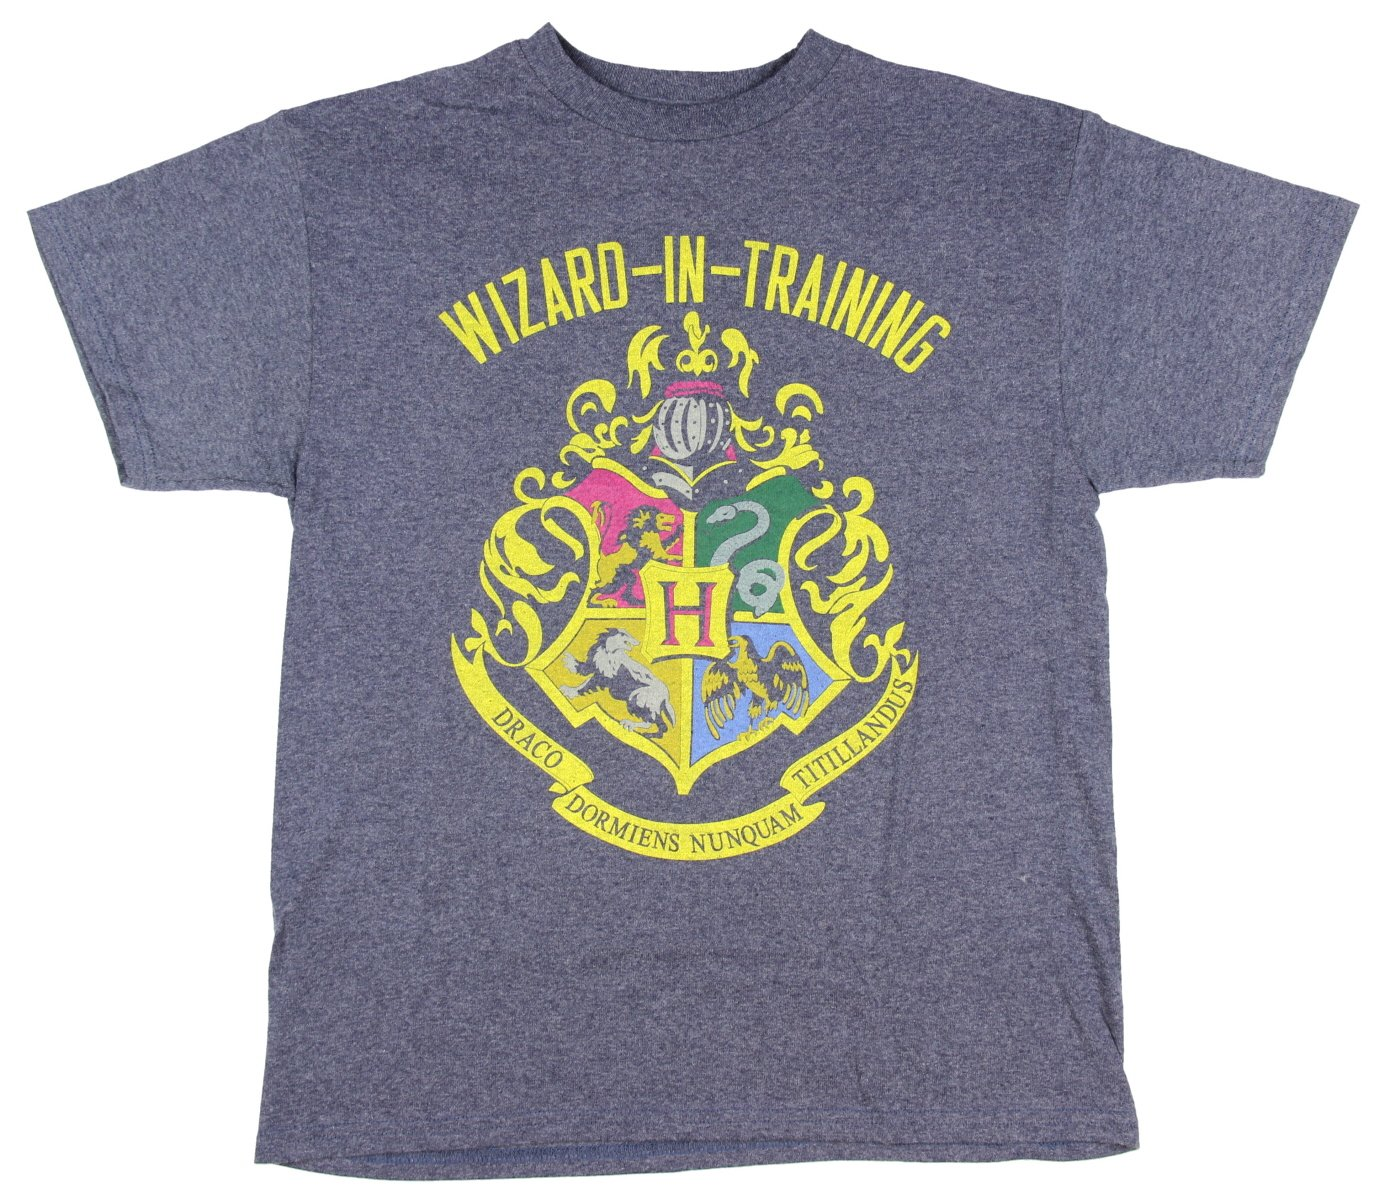 HARRY POTTER Boys Wizard in Training Tee (Navy,Small)